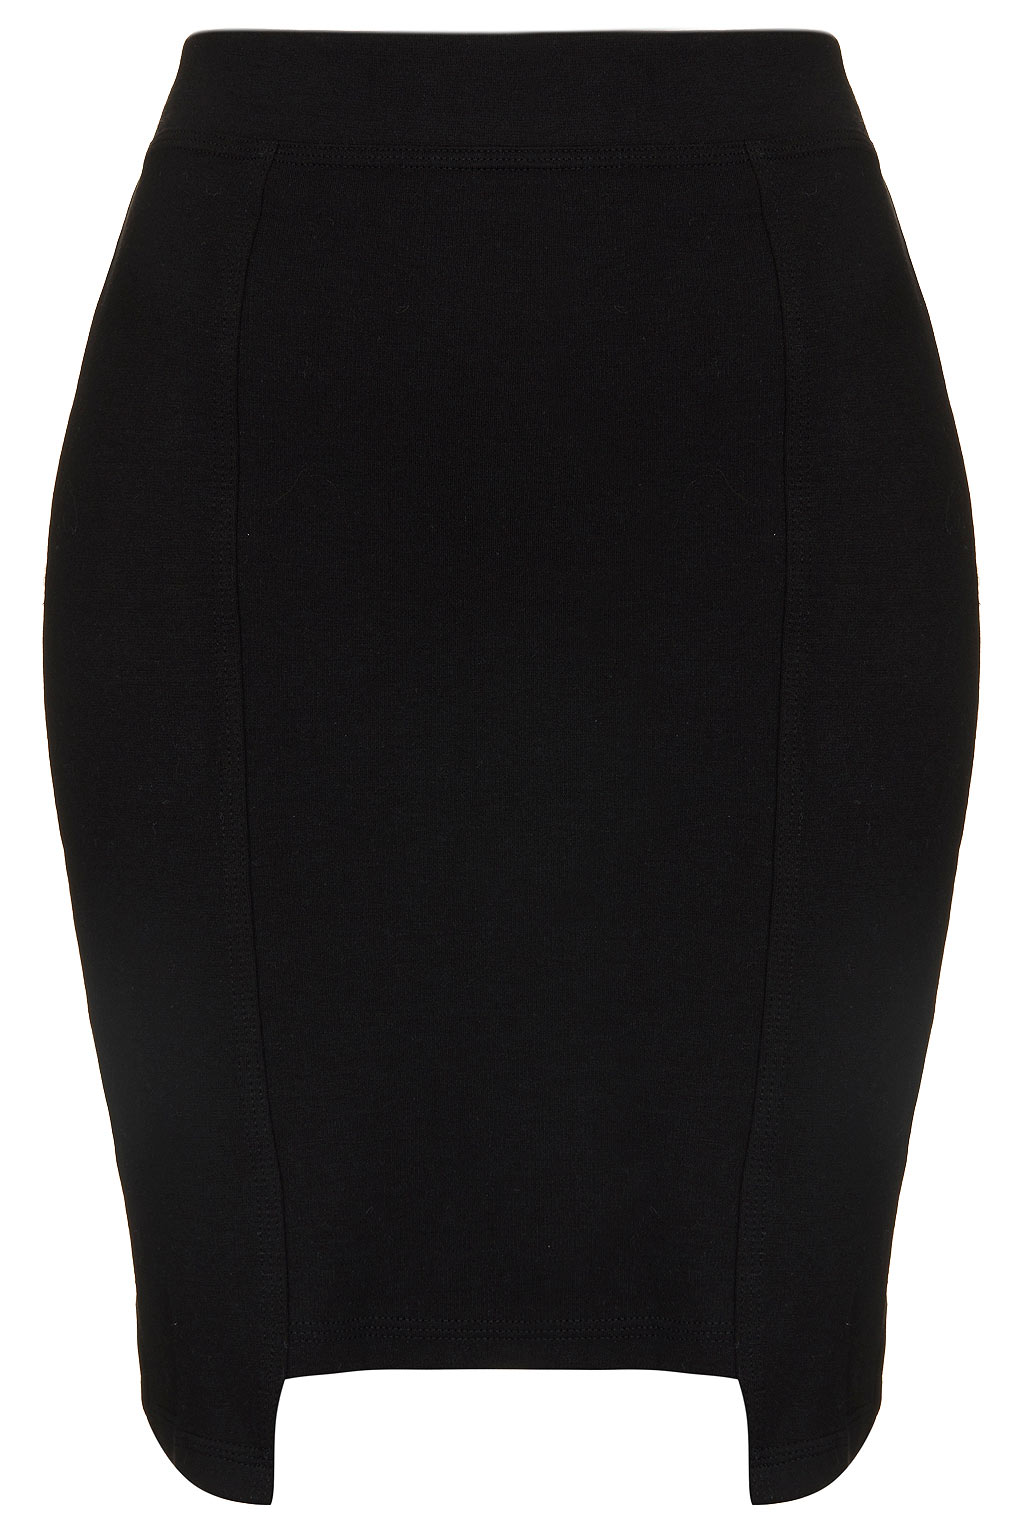 topshop stepped hem pencil skirt in black lyst